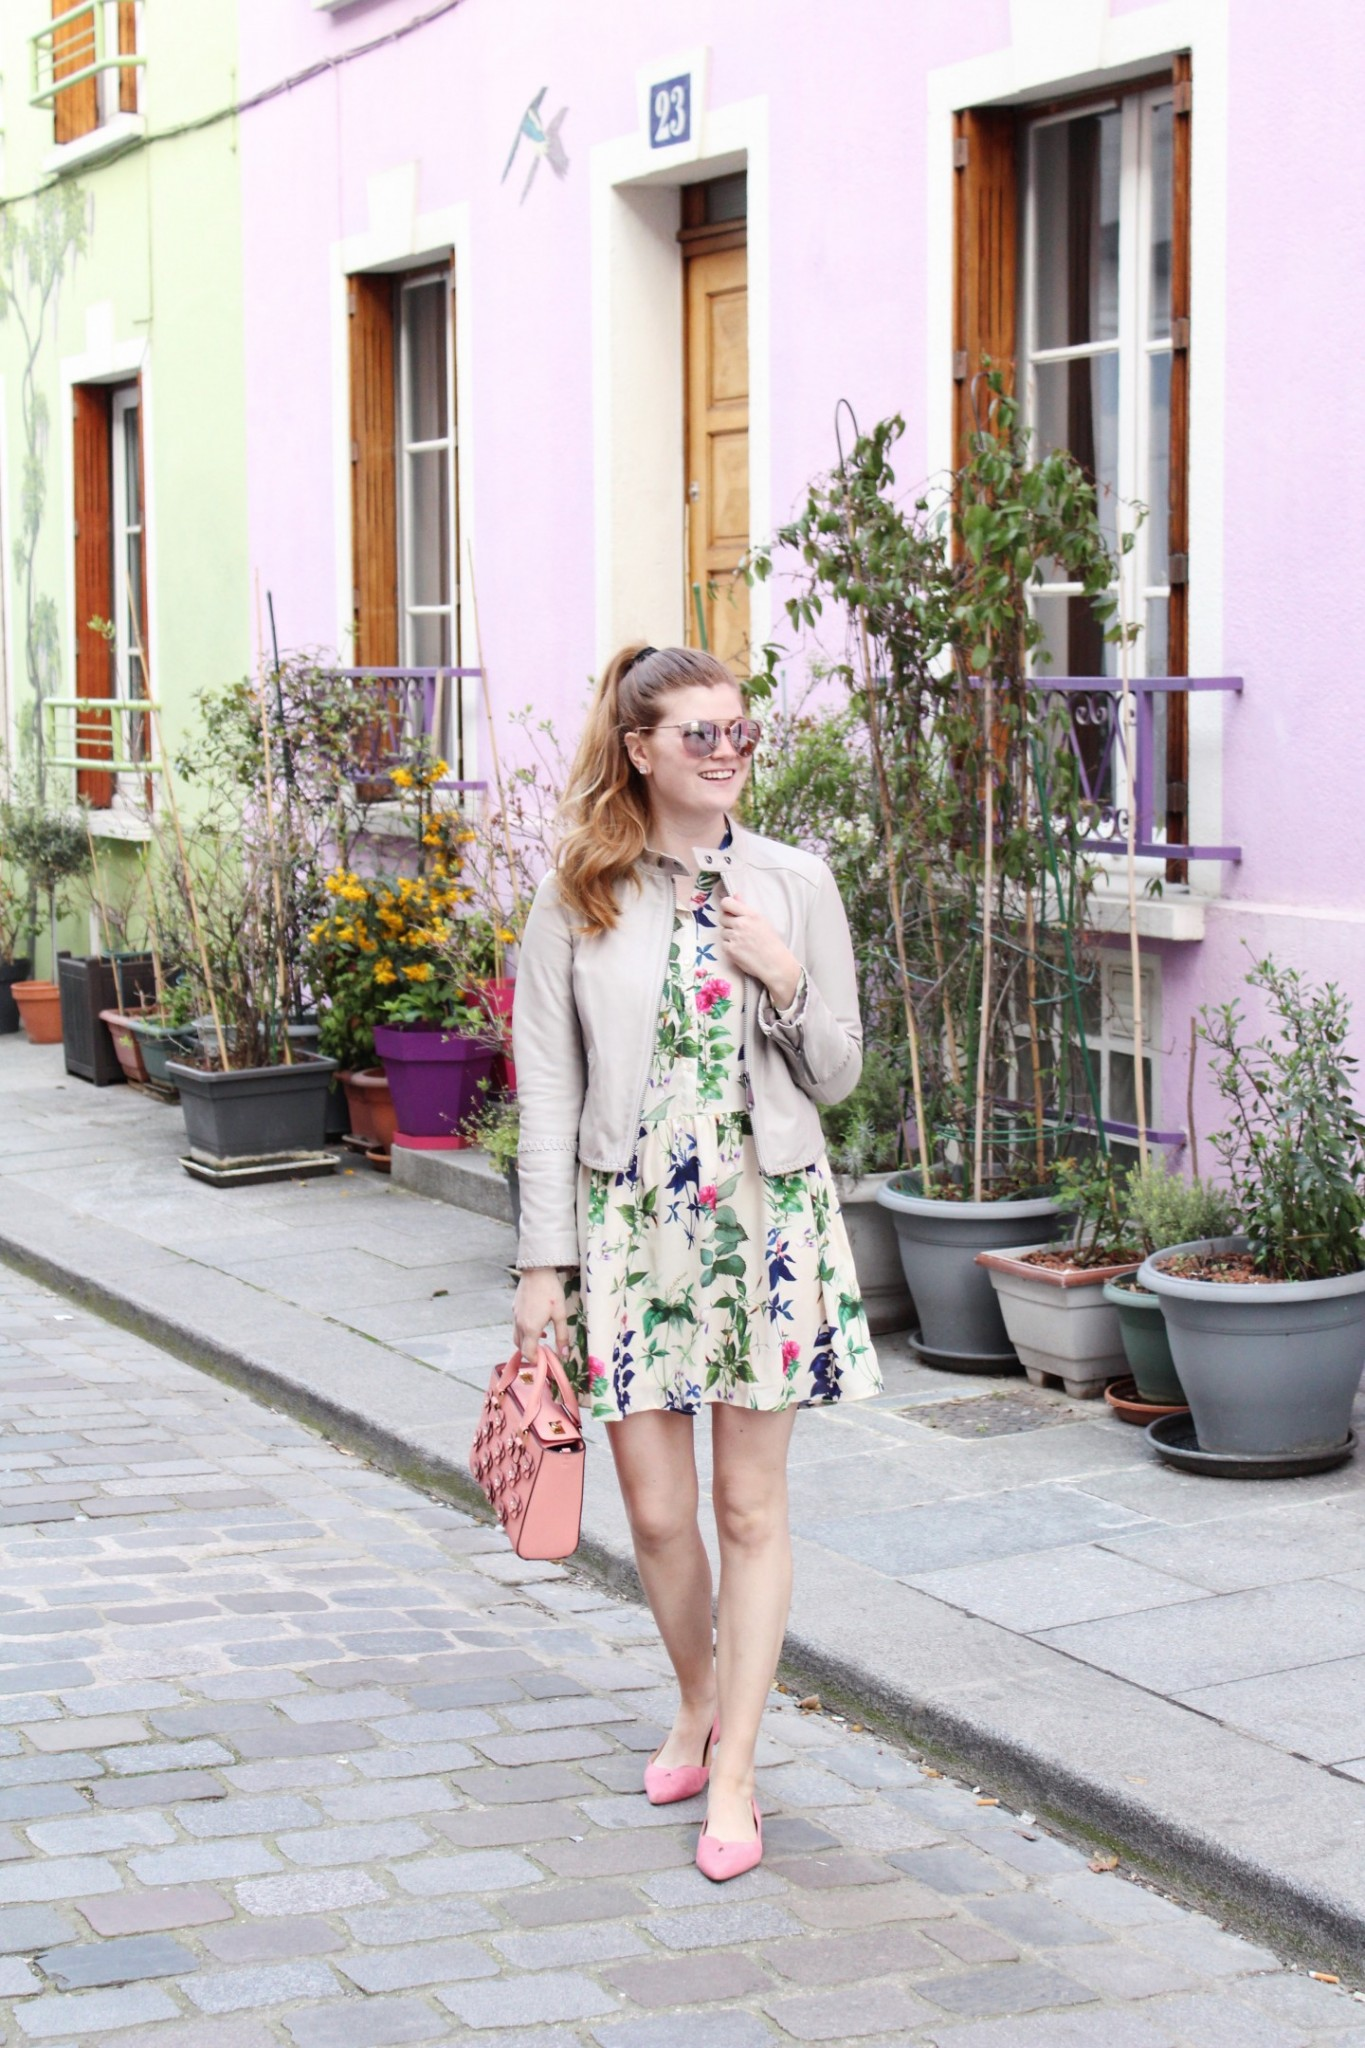 Lifestyle blogger Mollie Sheperdson shares a spring look in Paris